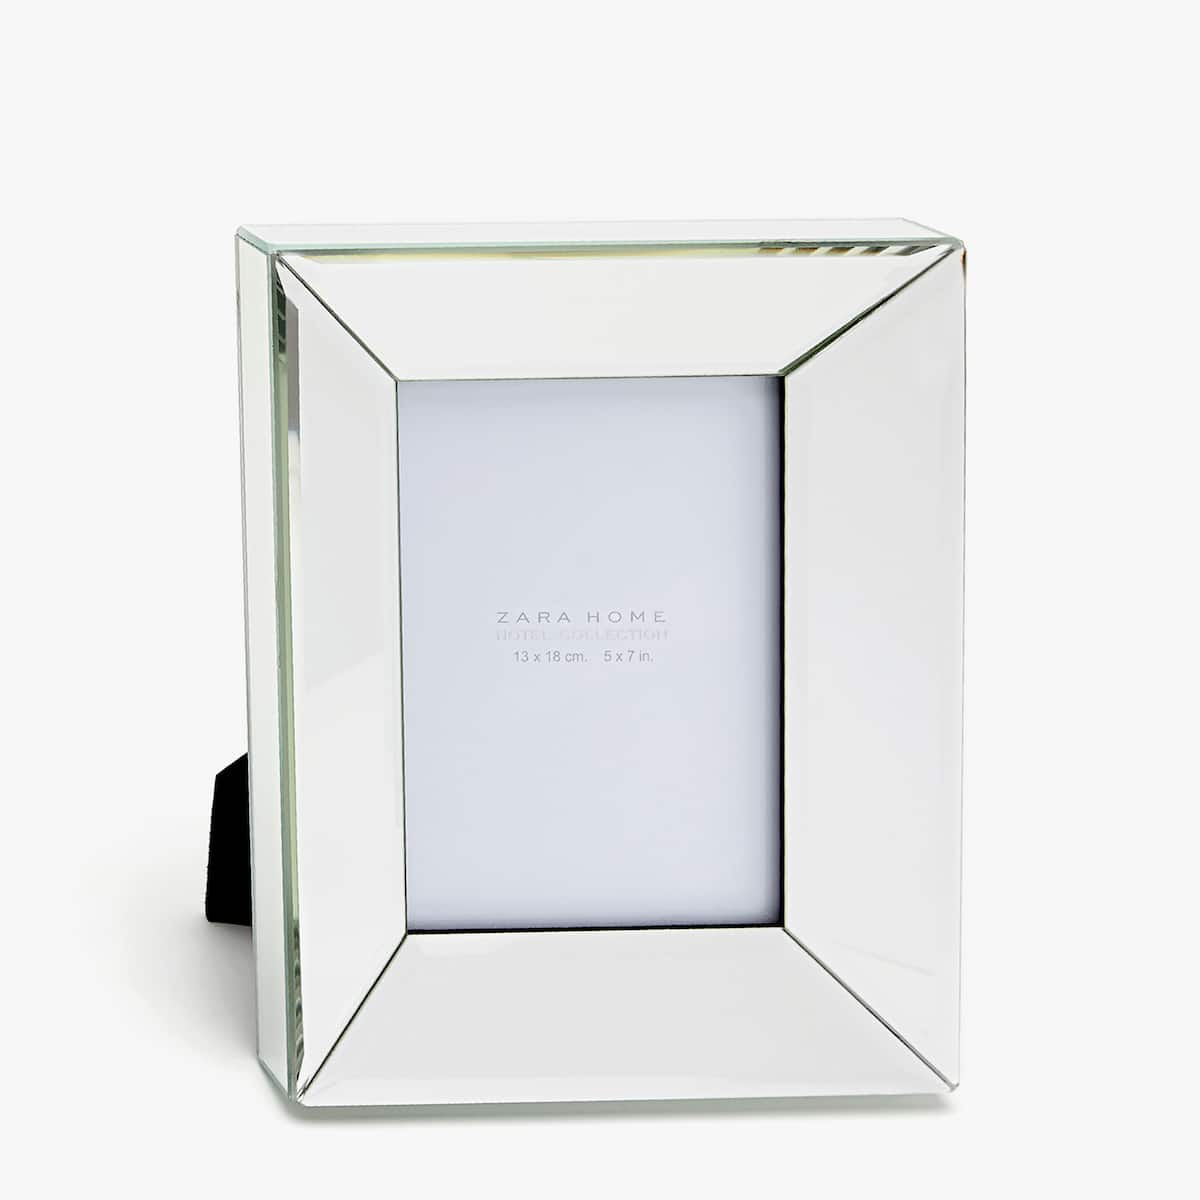 image 1 of the product bevelled mirrored frame - Mirrored Frame